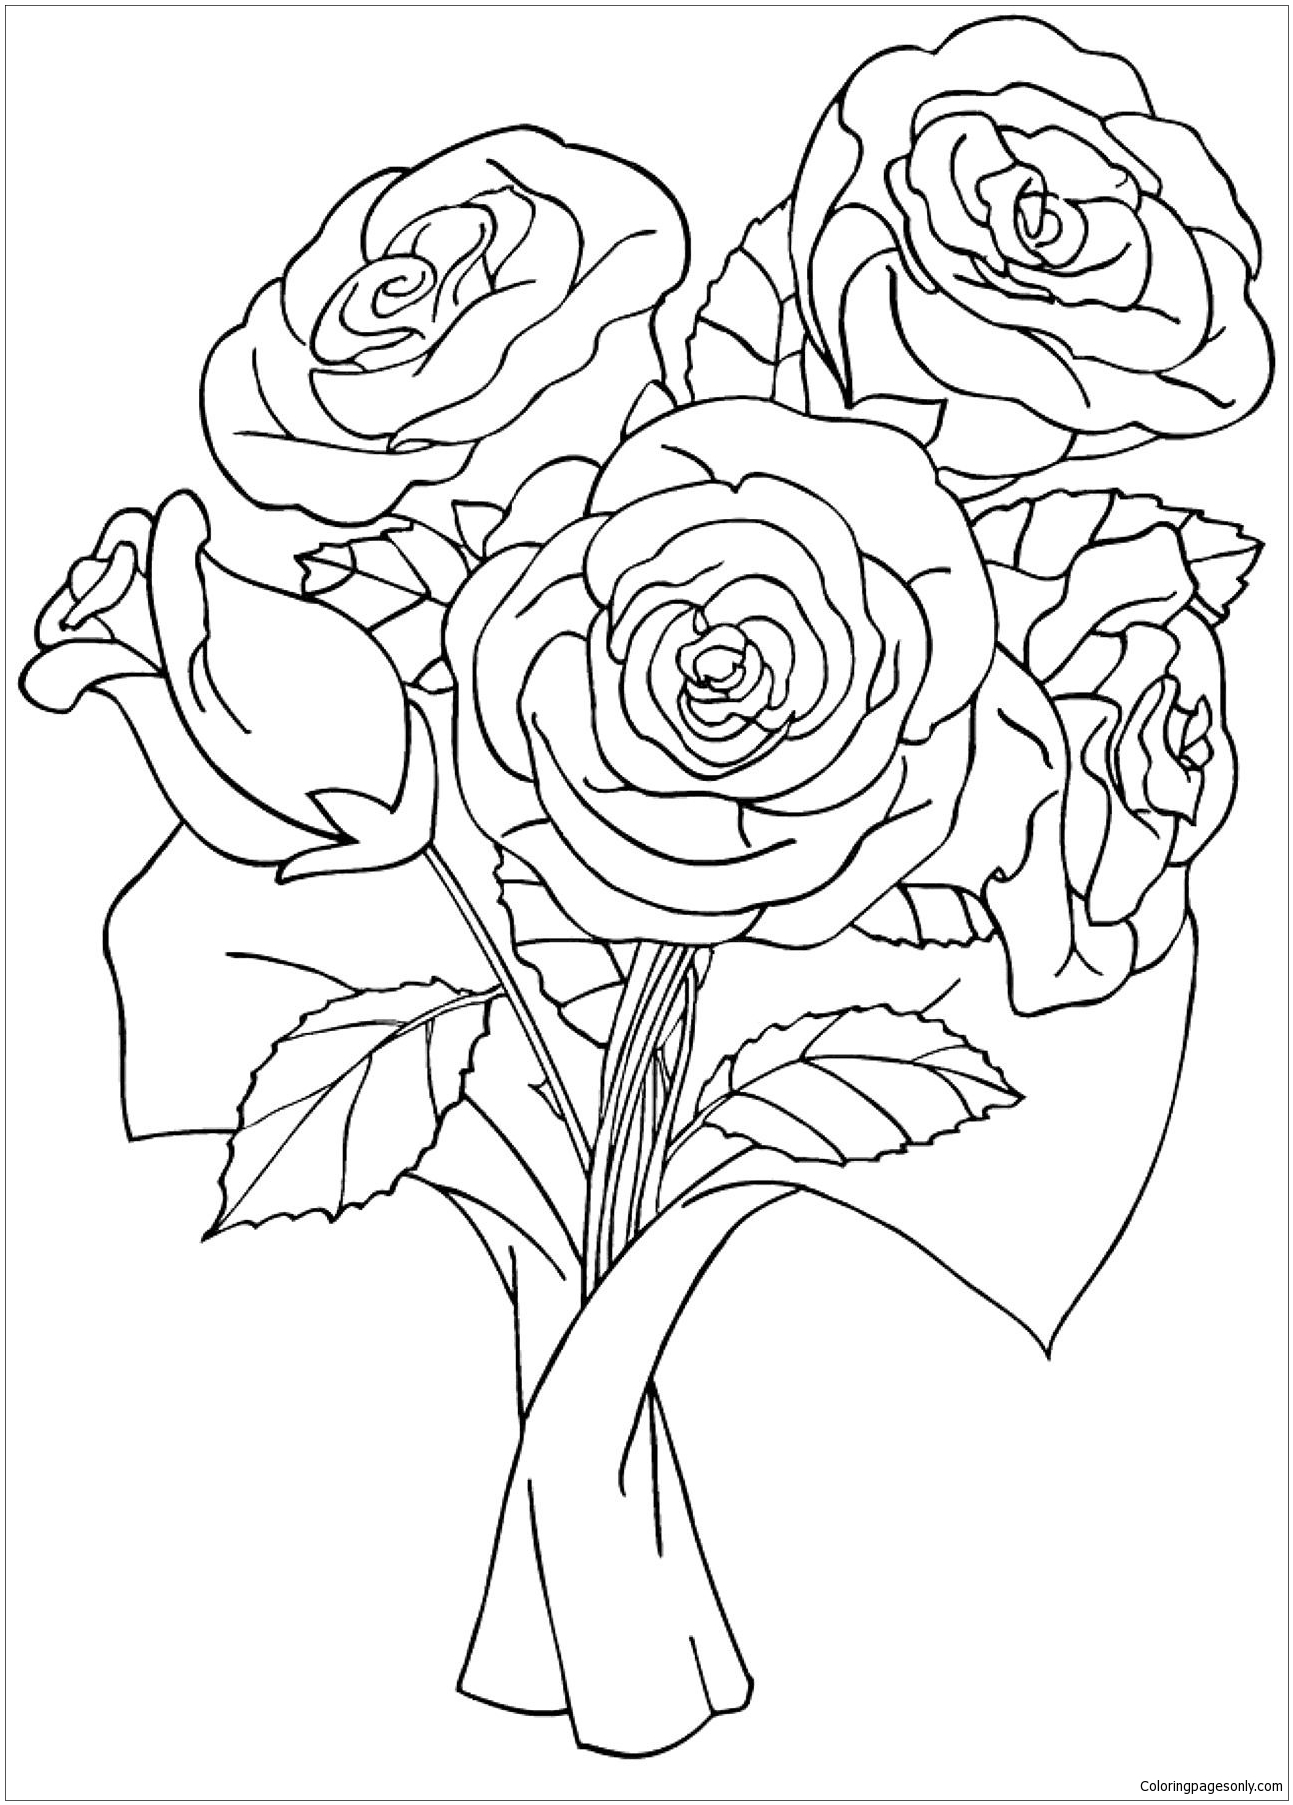 rose flower coloring pages roses flower coloring pages flower coloring pages free coloring rose flower pages